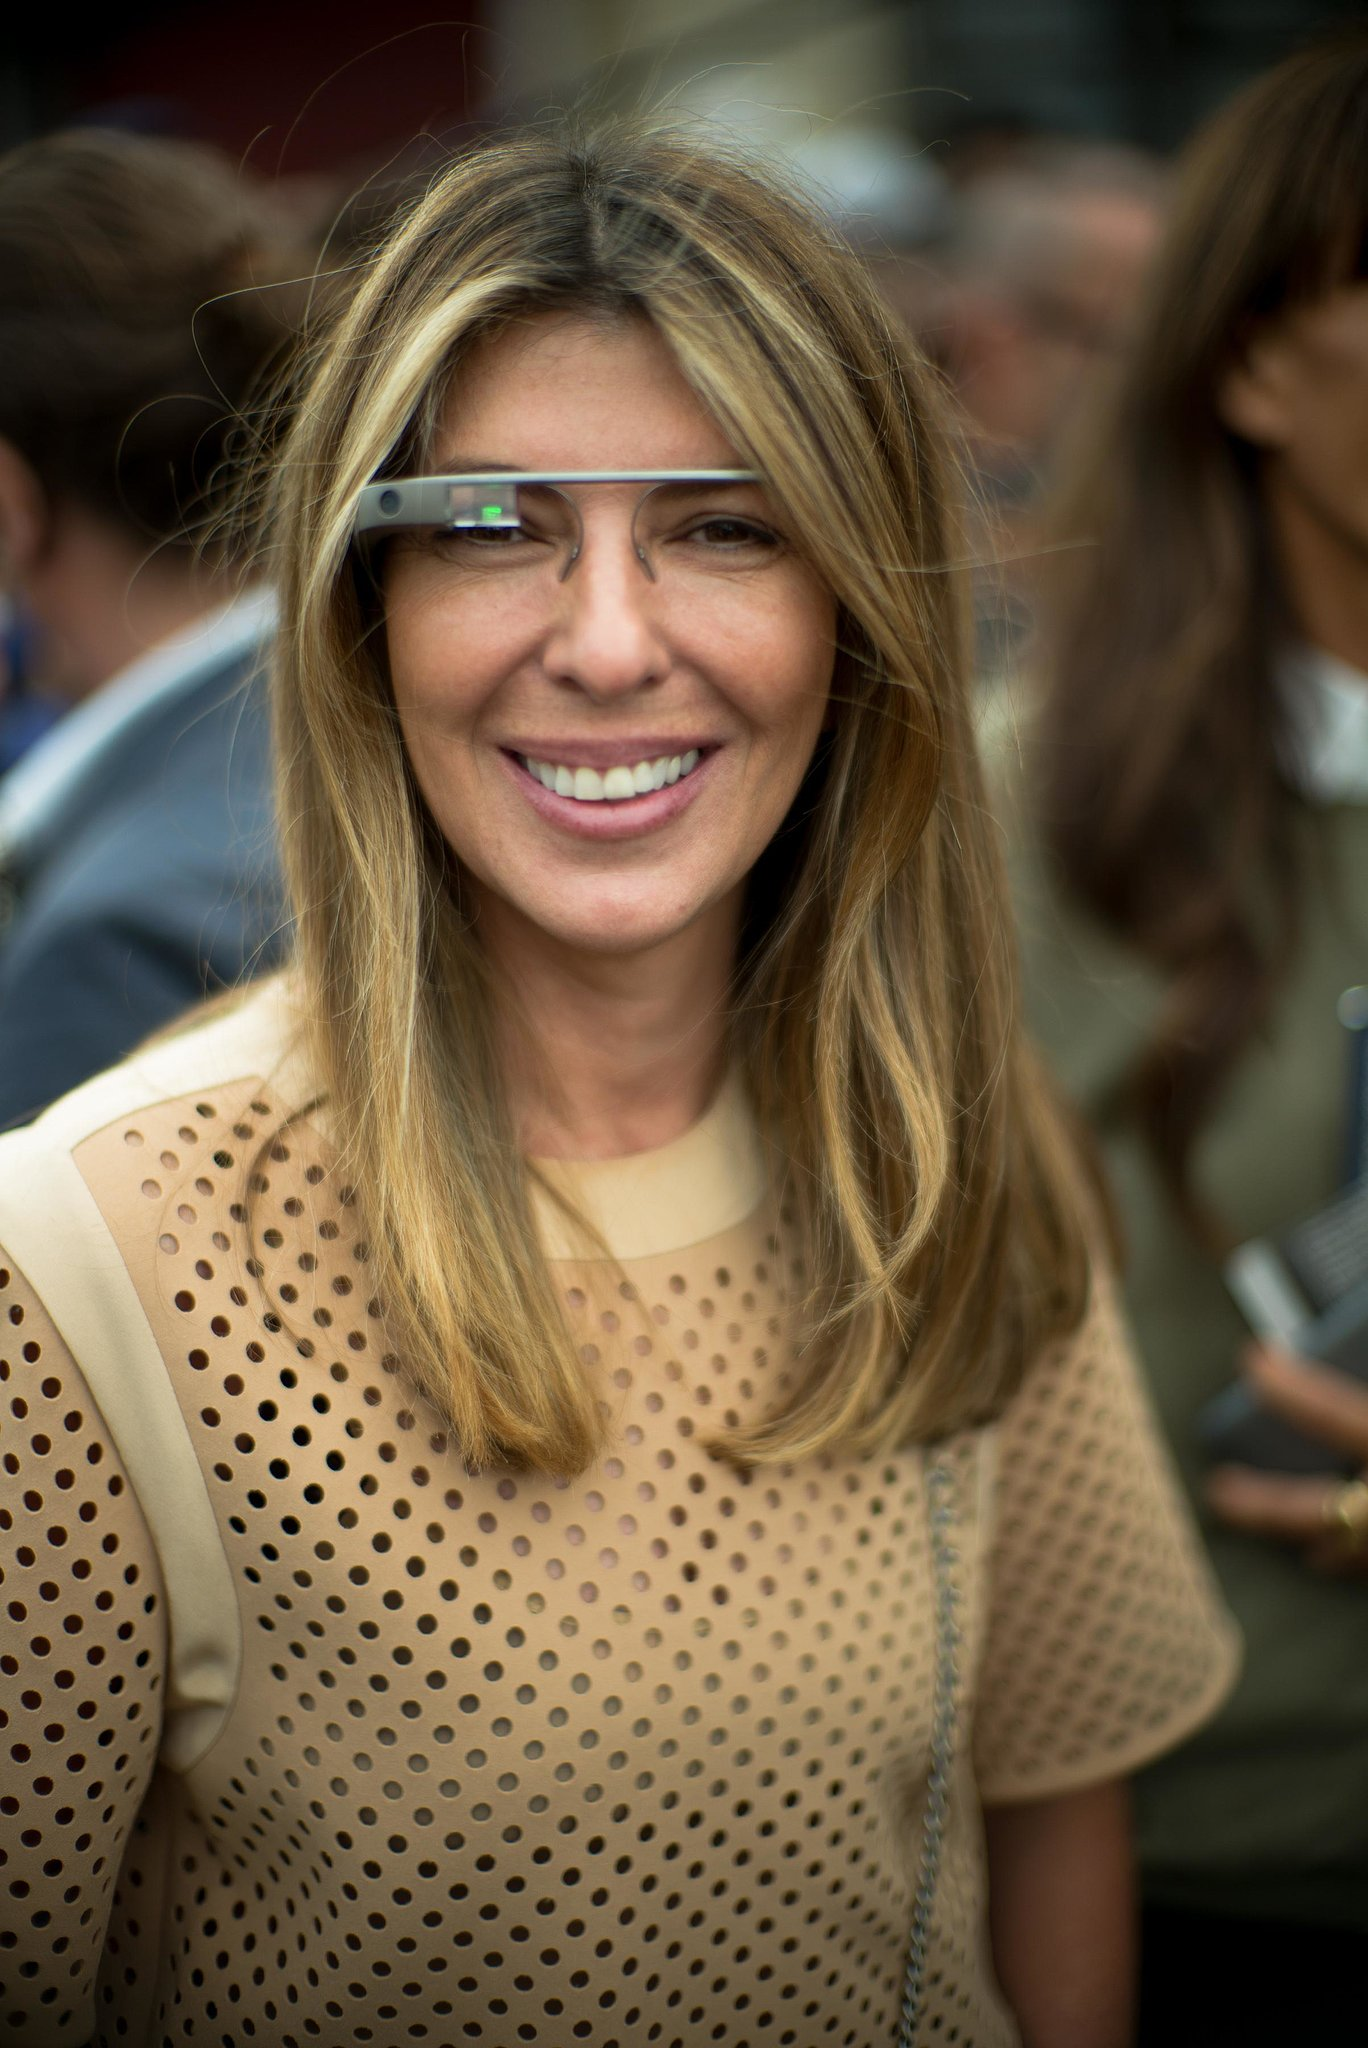 New fashion trends - Nina Garcia Modeled Google Glass In The Front Row Of